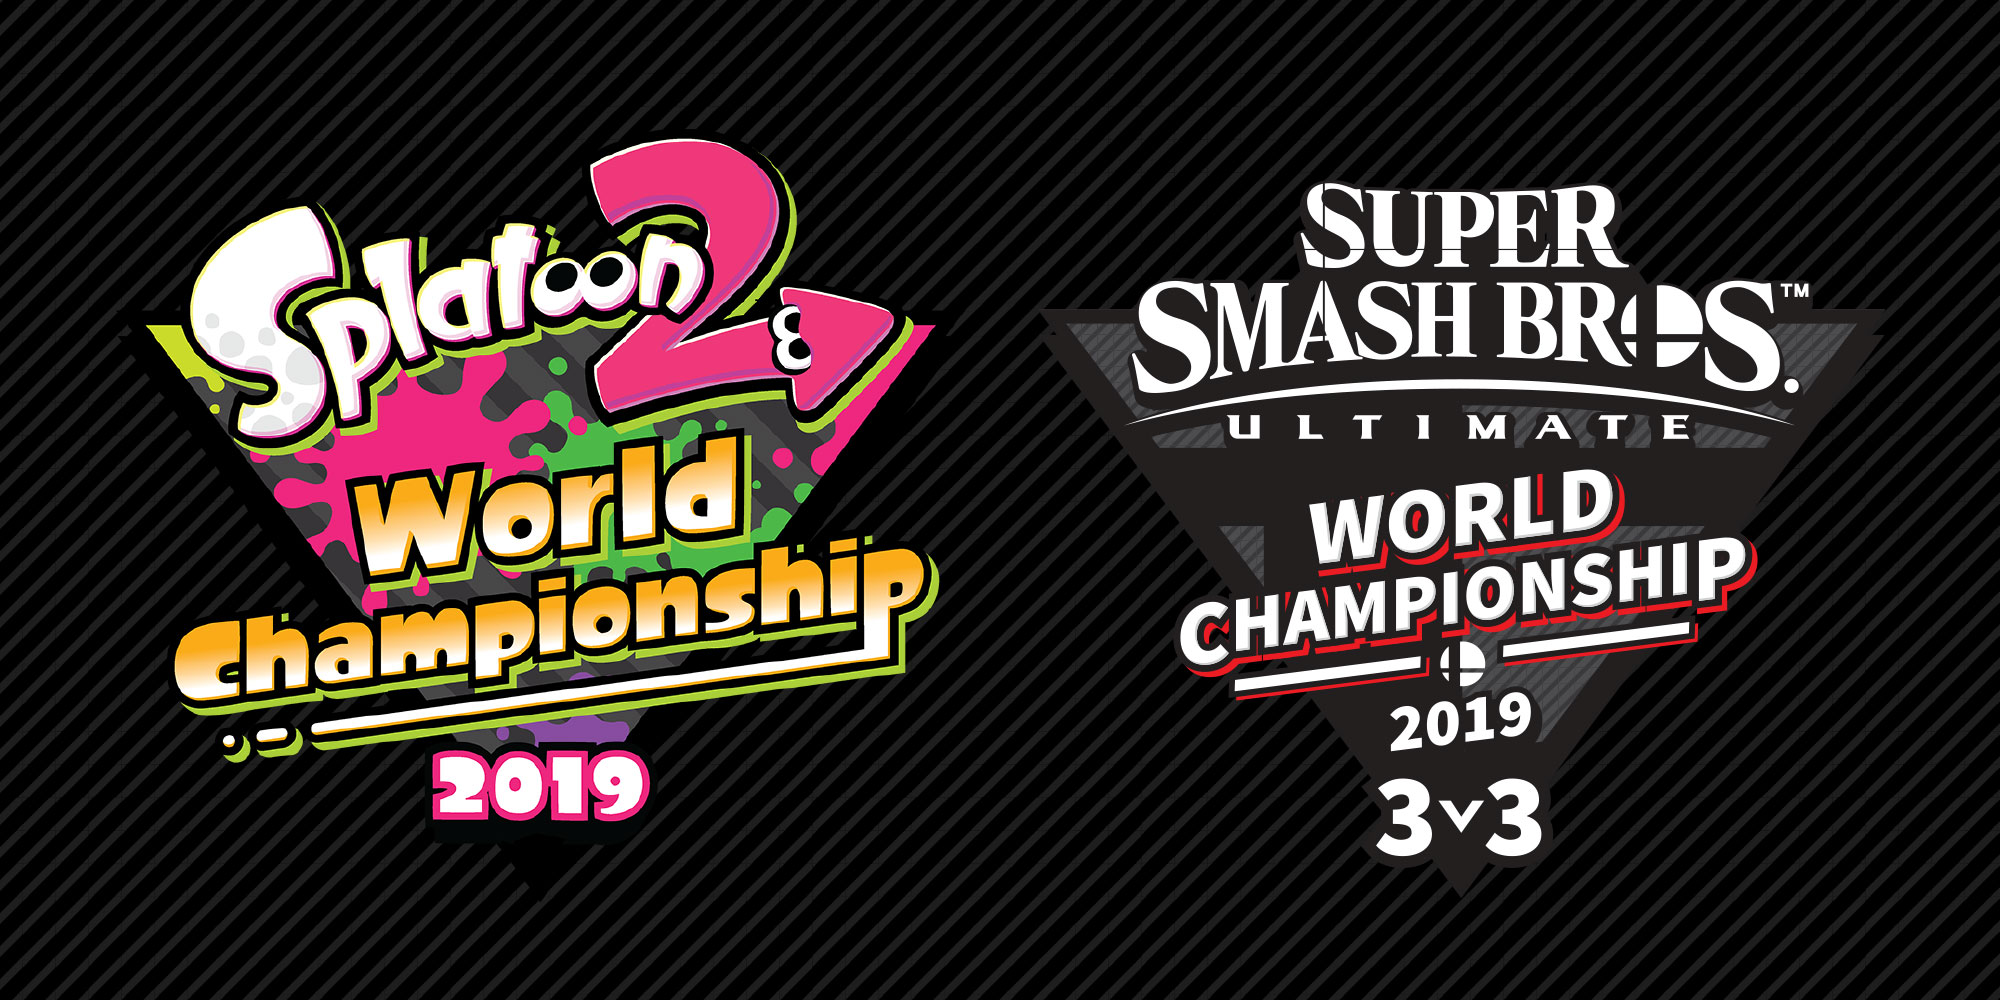 World champions crowned in Splatoon 2 and Super Smash Bros